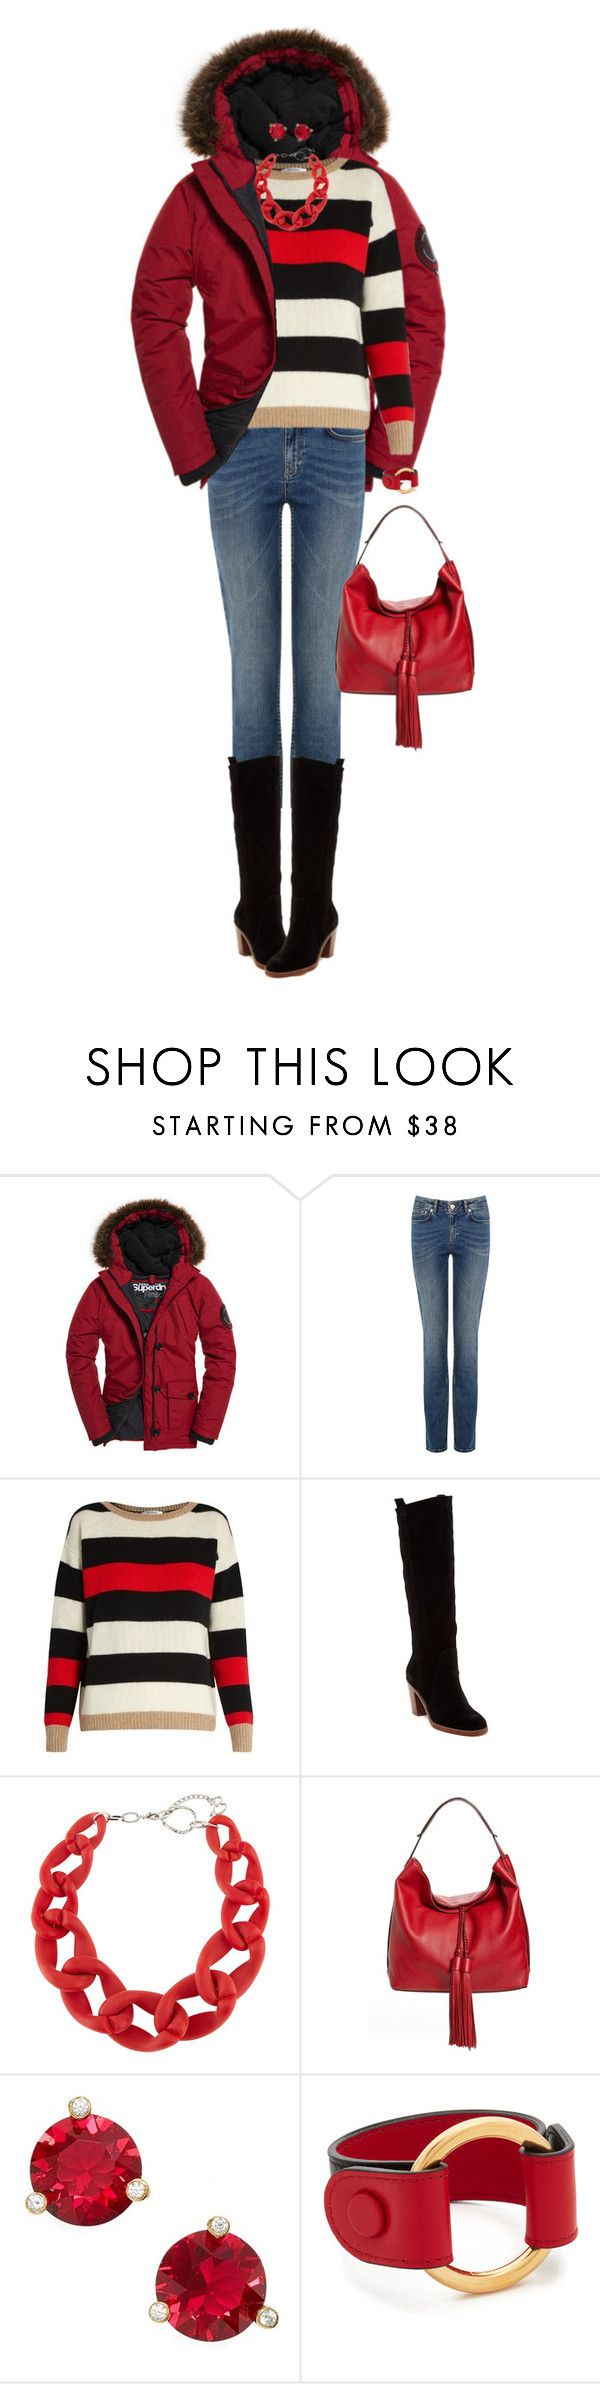 """Warm Winter Coat"" by ittie-kittie ❤ liked on Polyvore featuring Superdry, MaxMara, Matt Bernson, DIANA BROUSSARD, Rebecca Minkoff, Kate Spade and Marni"